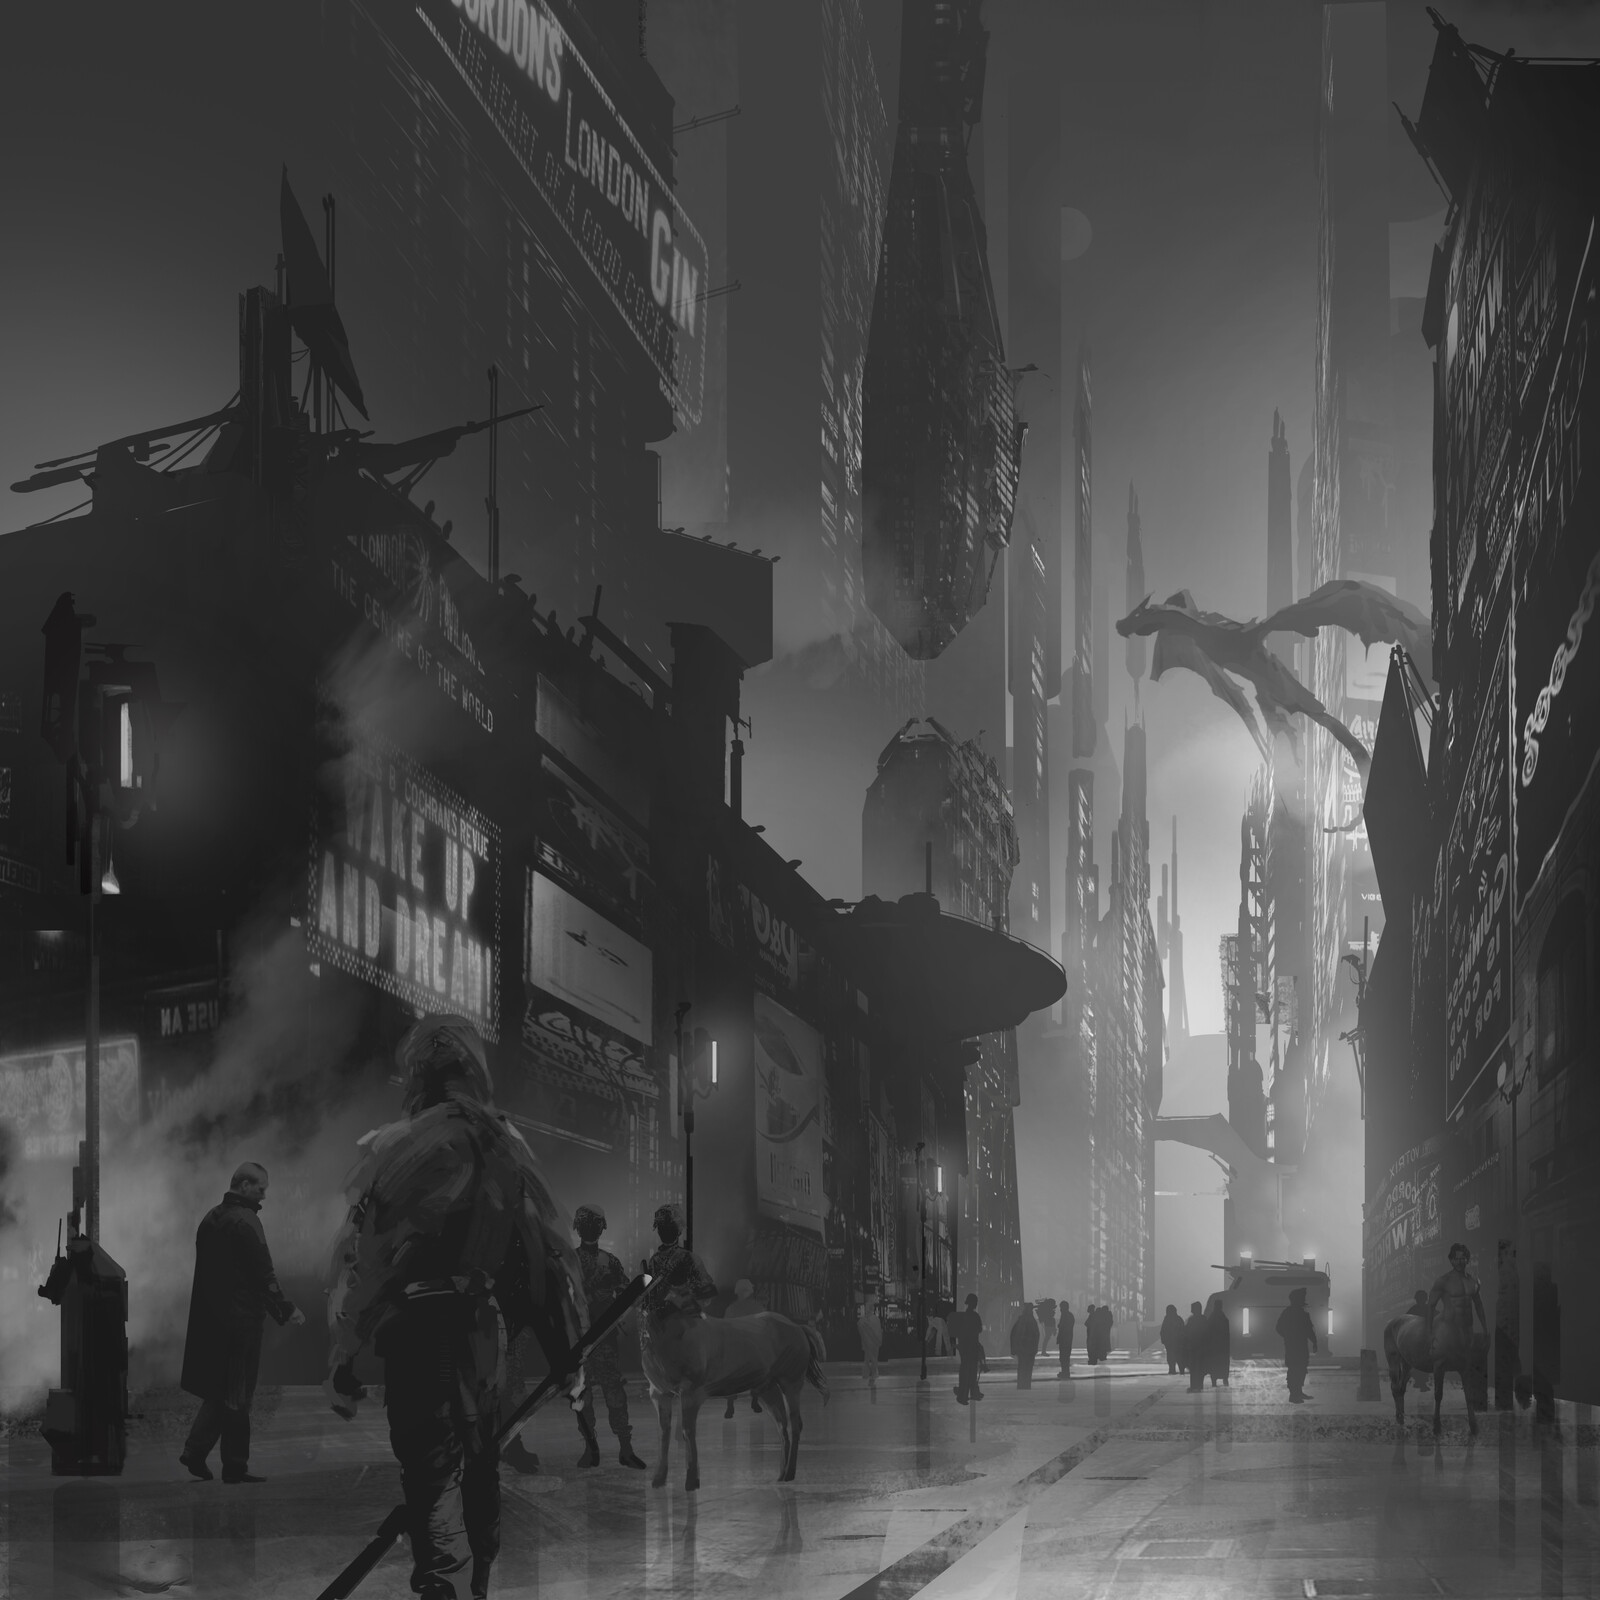 London future street with mythic animals, sci-fi look,